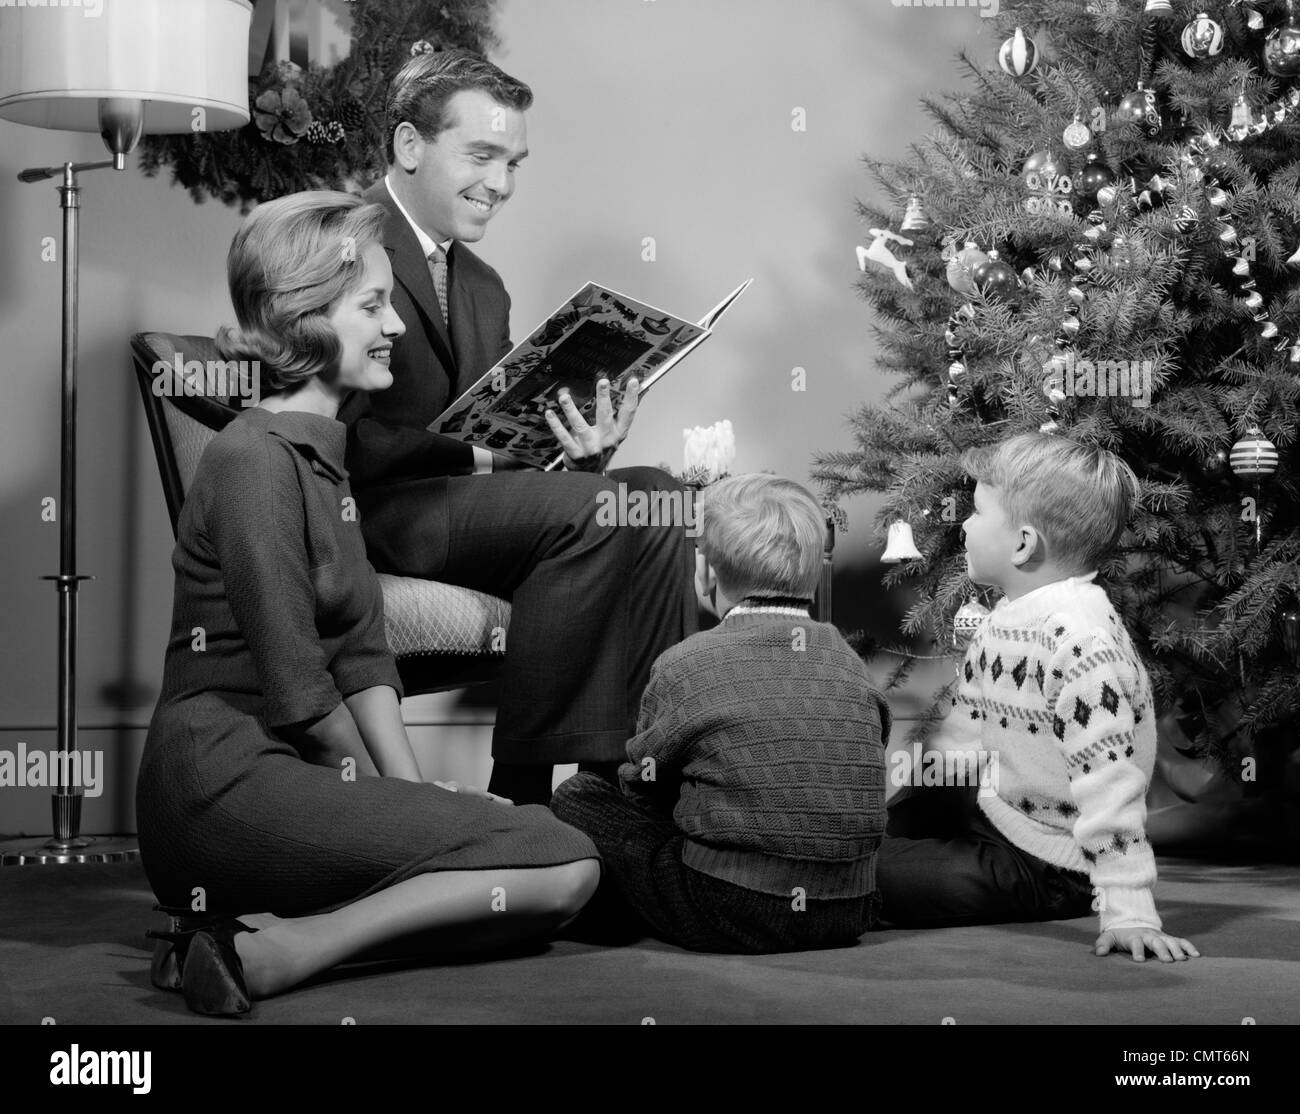 living room christmas tree 1960s stockfotos living room christmas tree 1960s bilder alamy. Black Bedroom Furniture Sets. Home Design Ideas